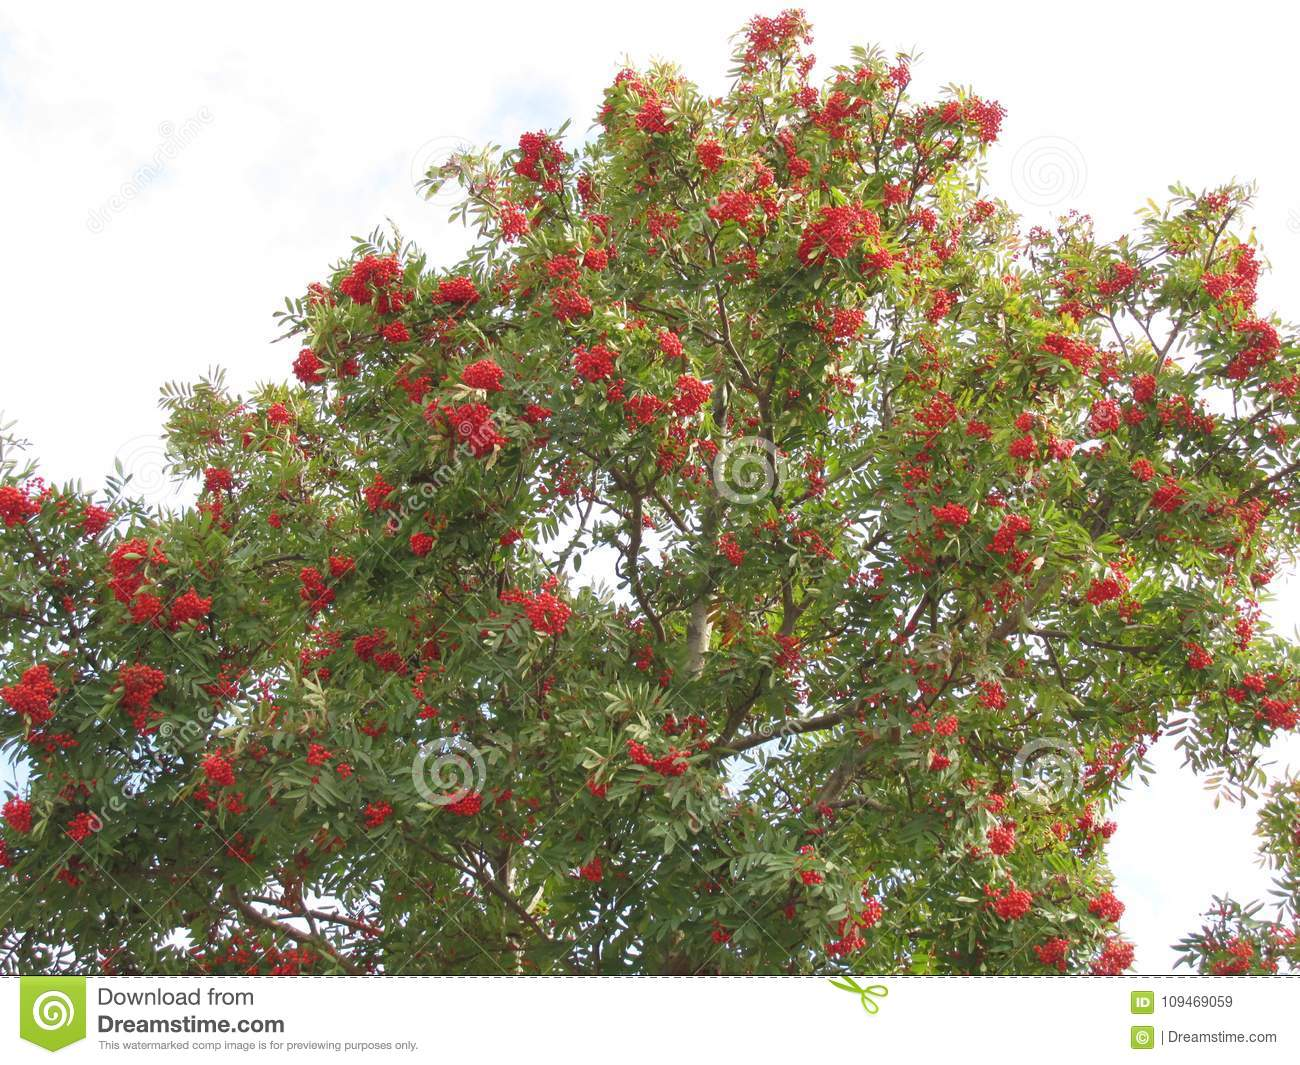 Mountain ash with bunches of berries on branches.